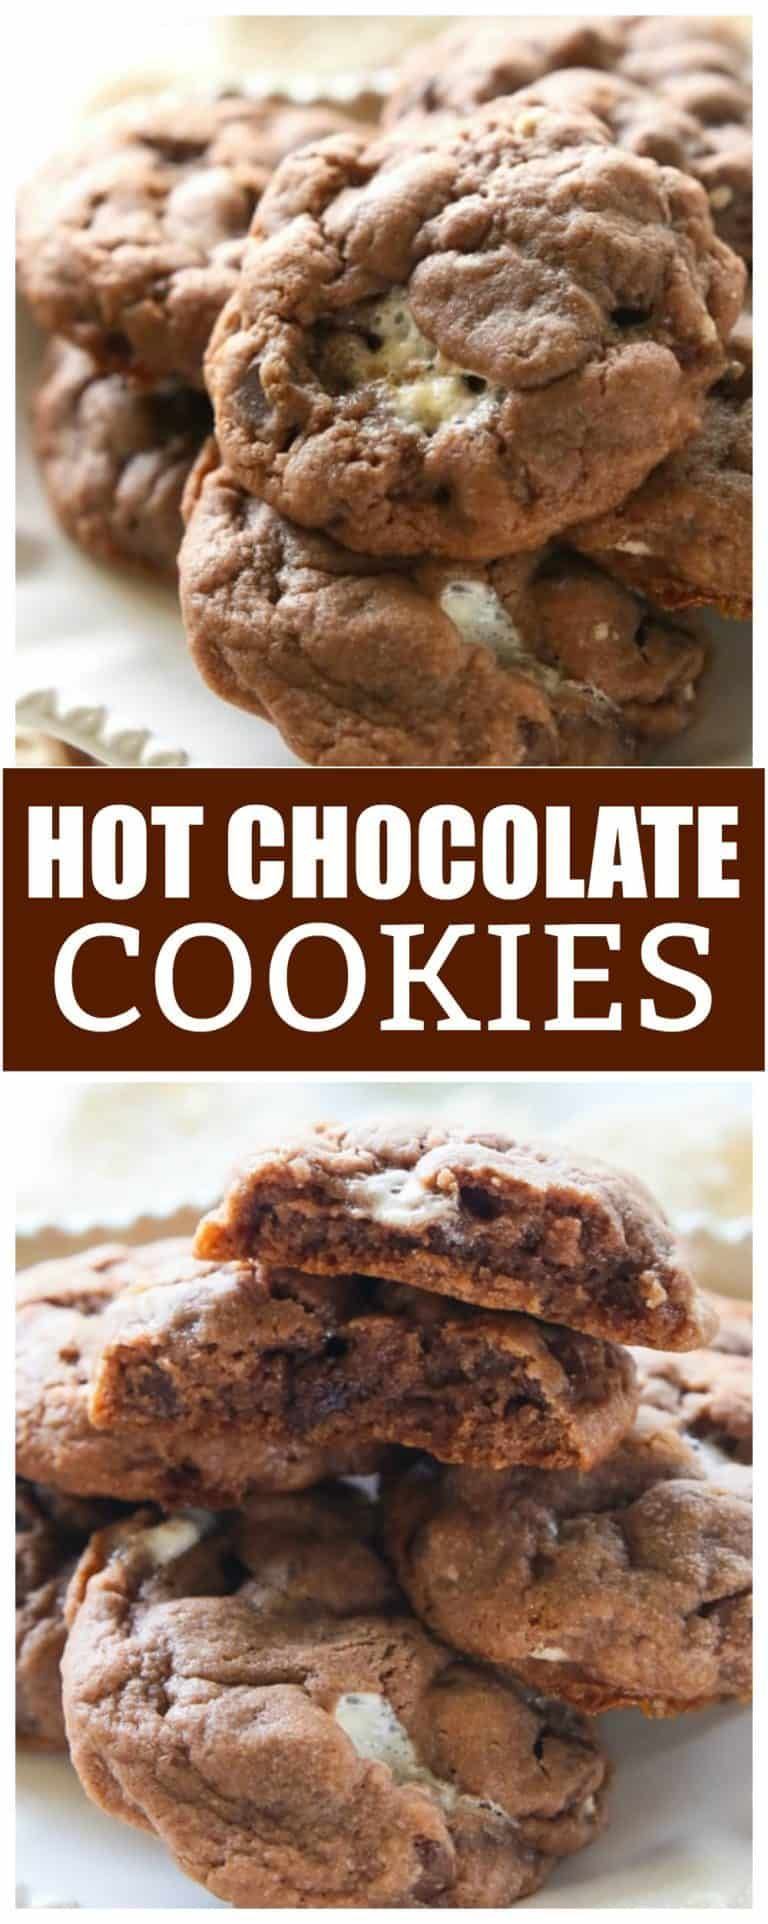 Hot Chocolate Cookies Recipe - The Girl Who Ate Everything